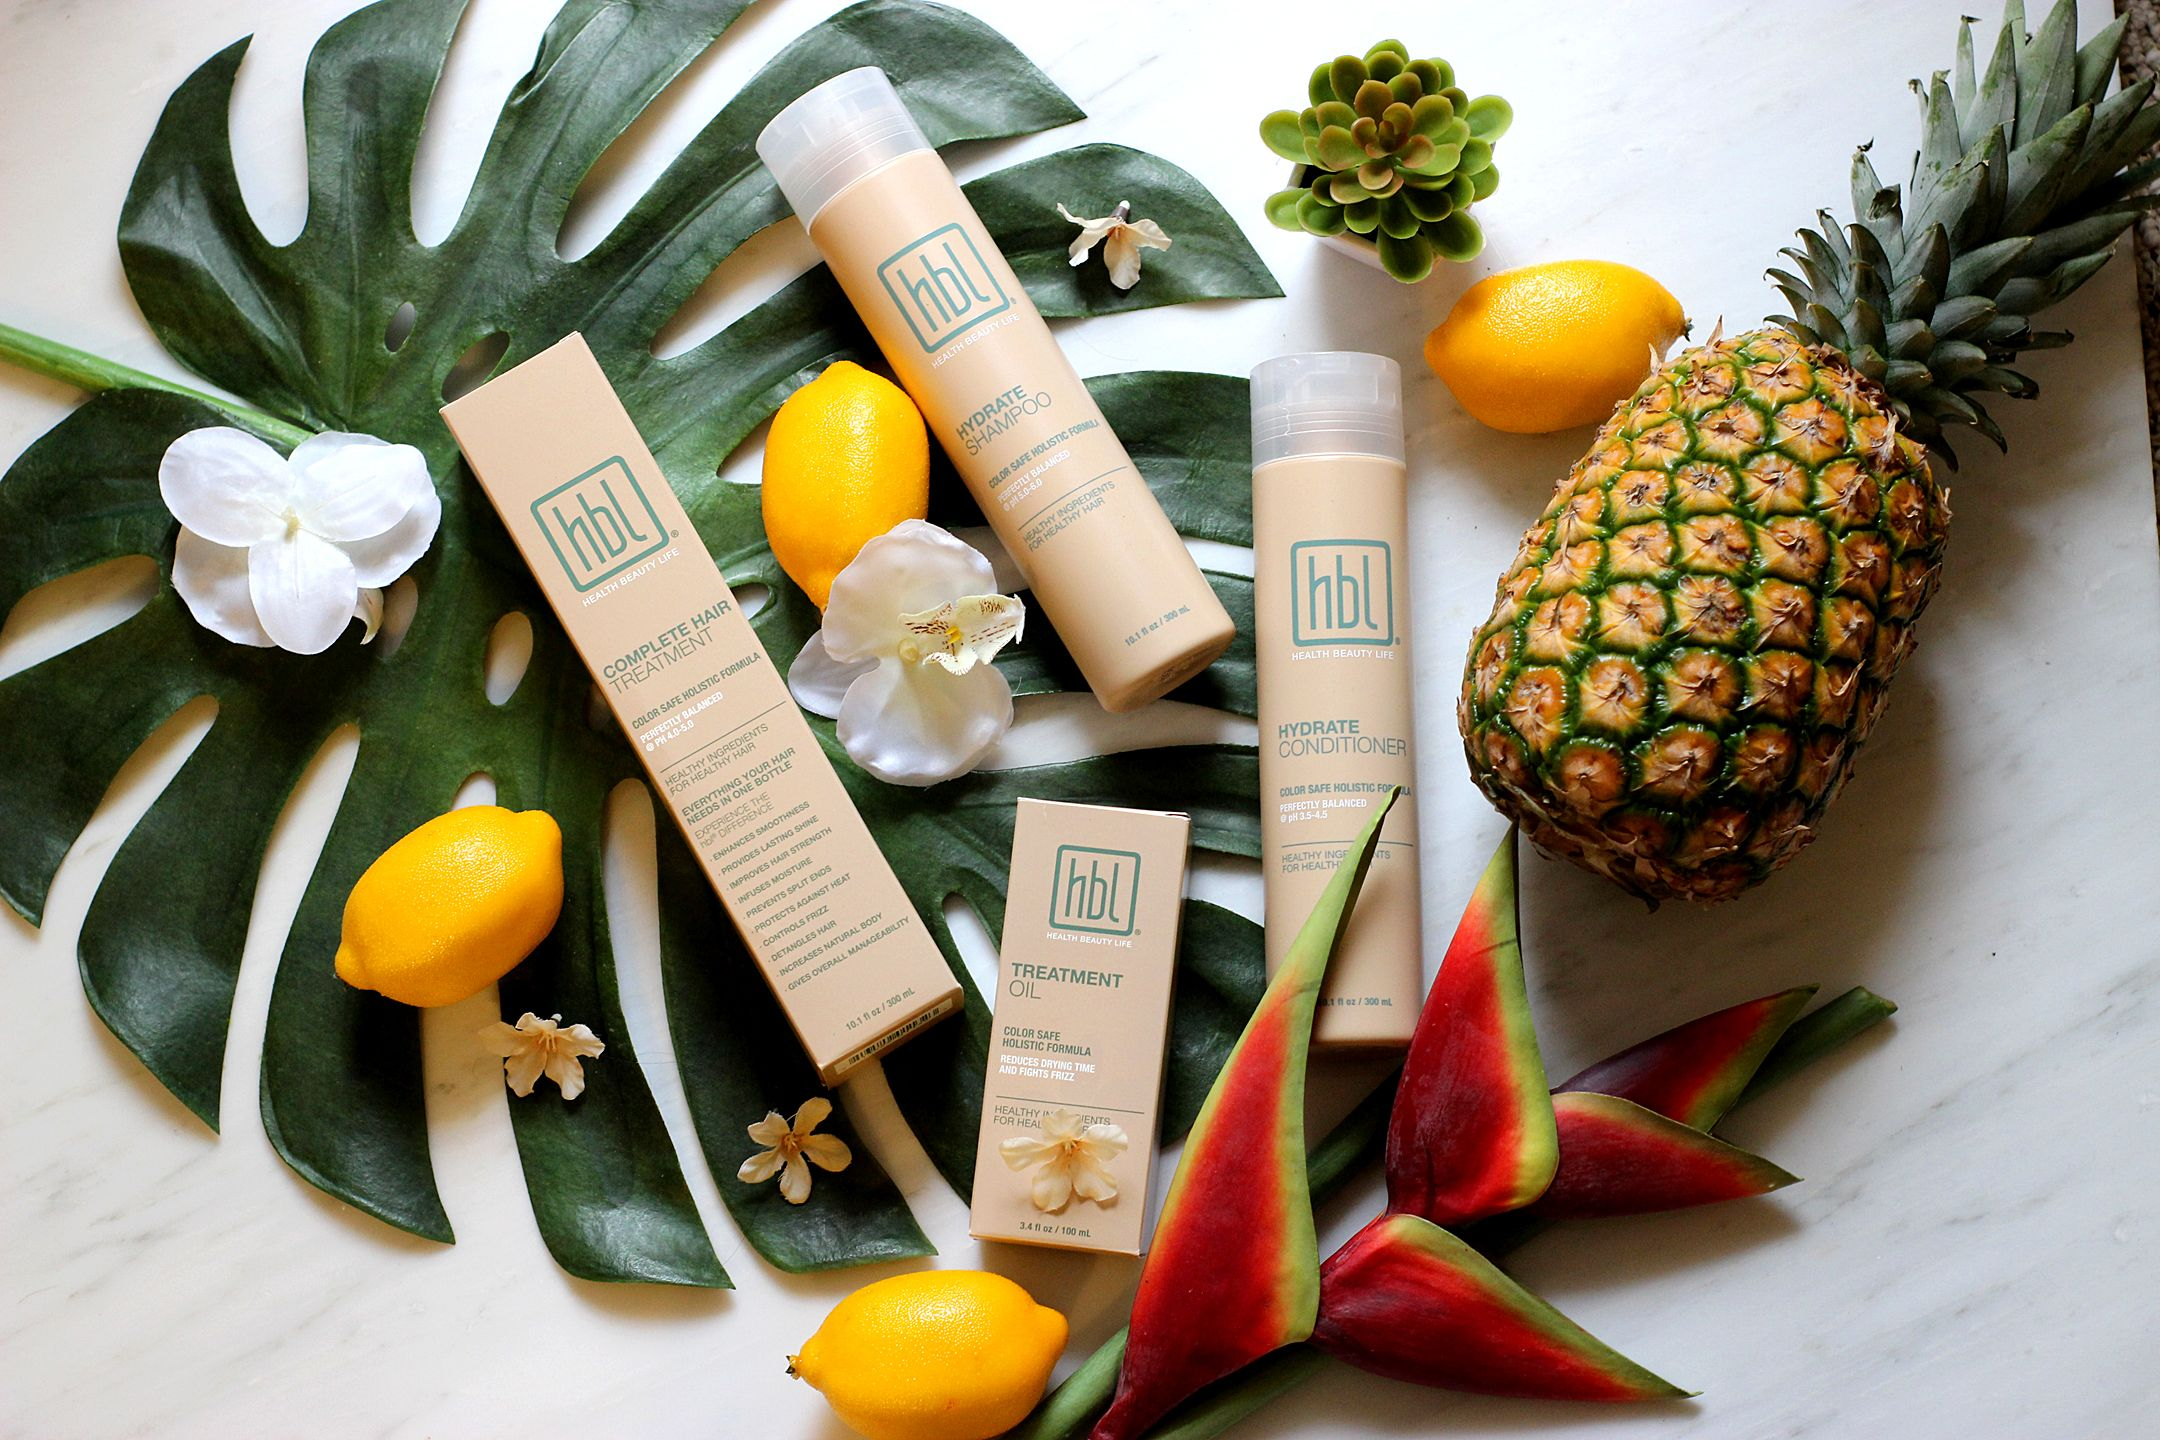 holistic shampoo and conditioner hbl is perfect for summer